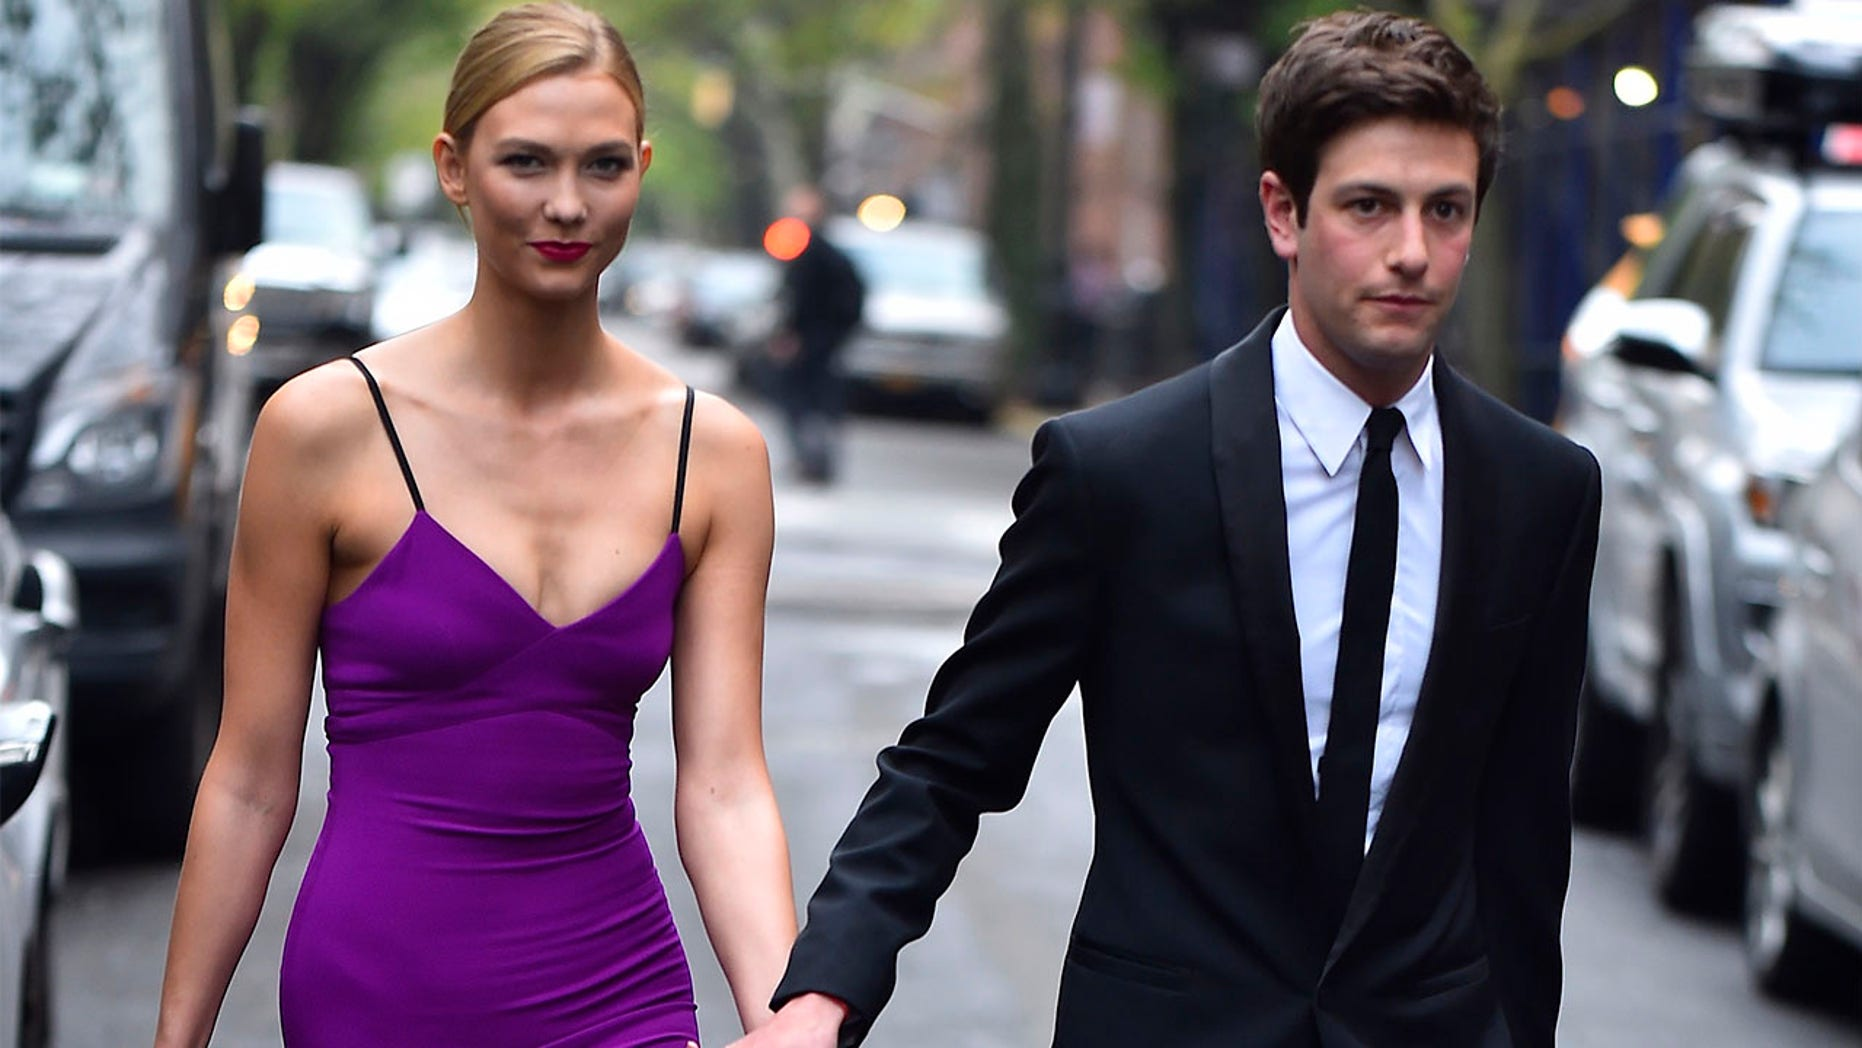 Karlie Kloss married Josh Kushner on Thursday, the supermodel revealed on Instagram.